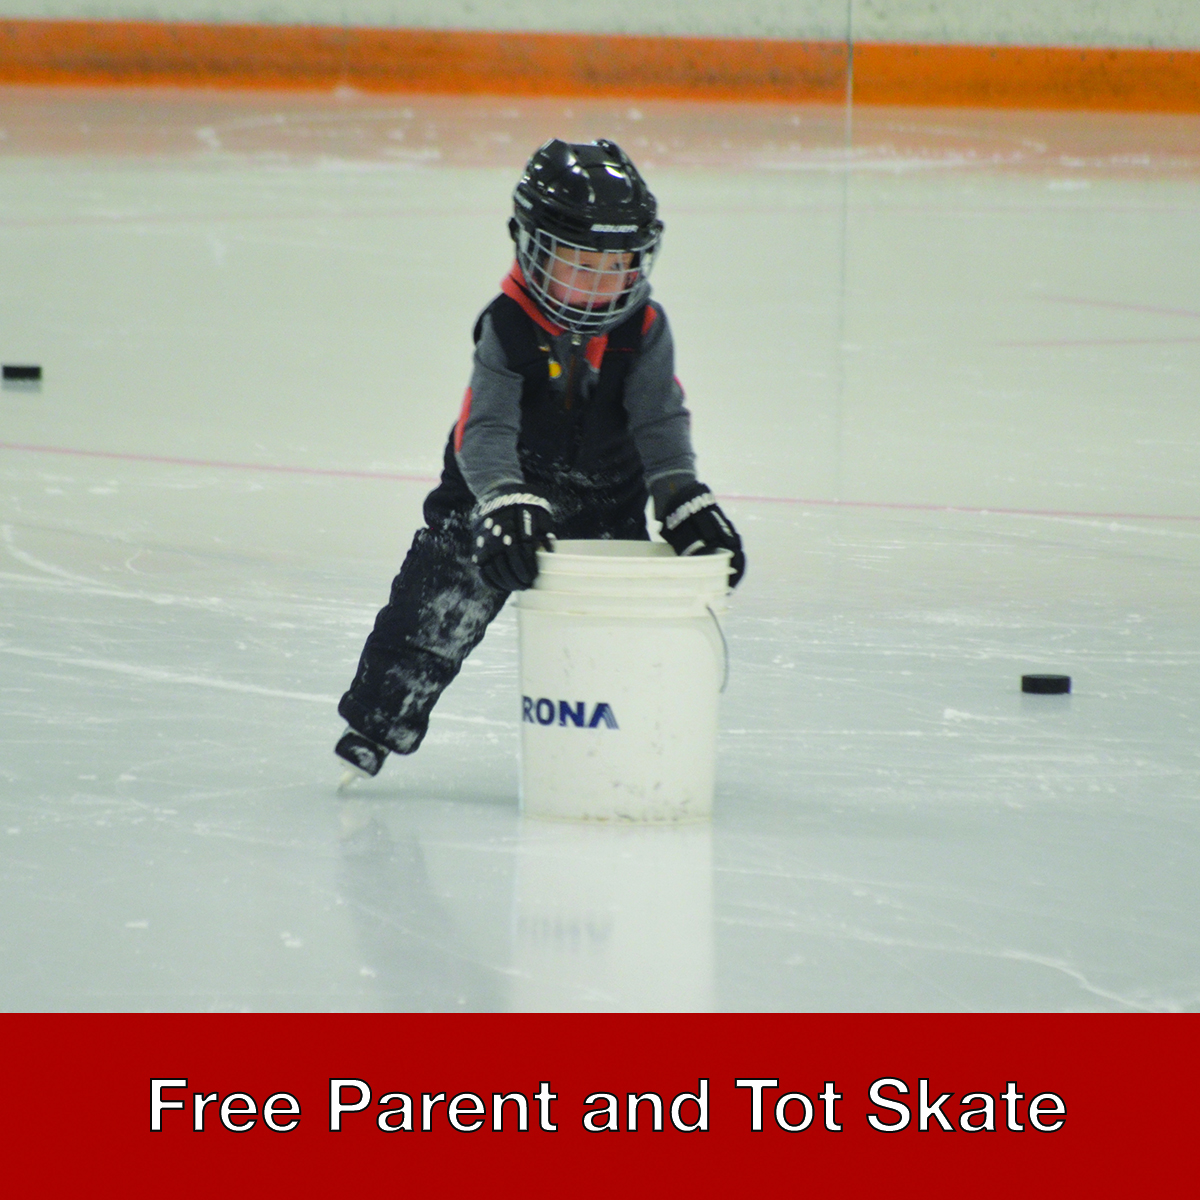 Free Parent and Tot Skate